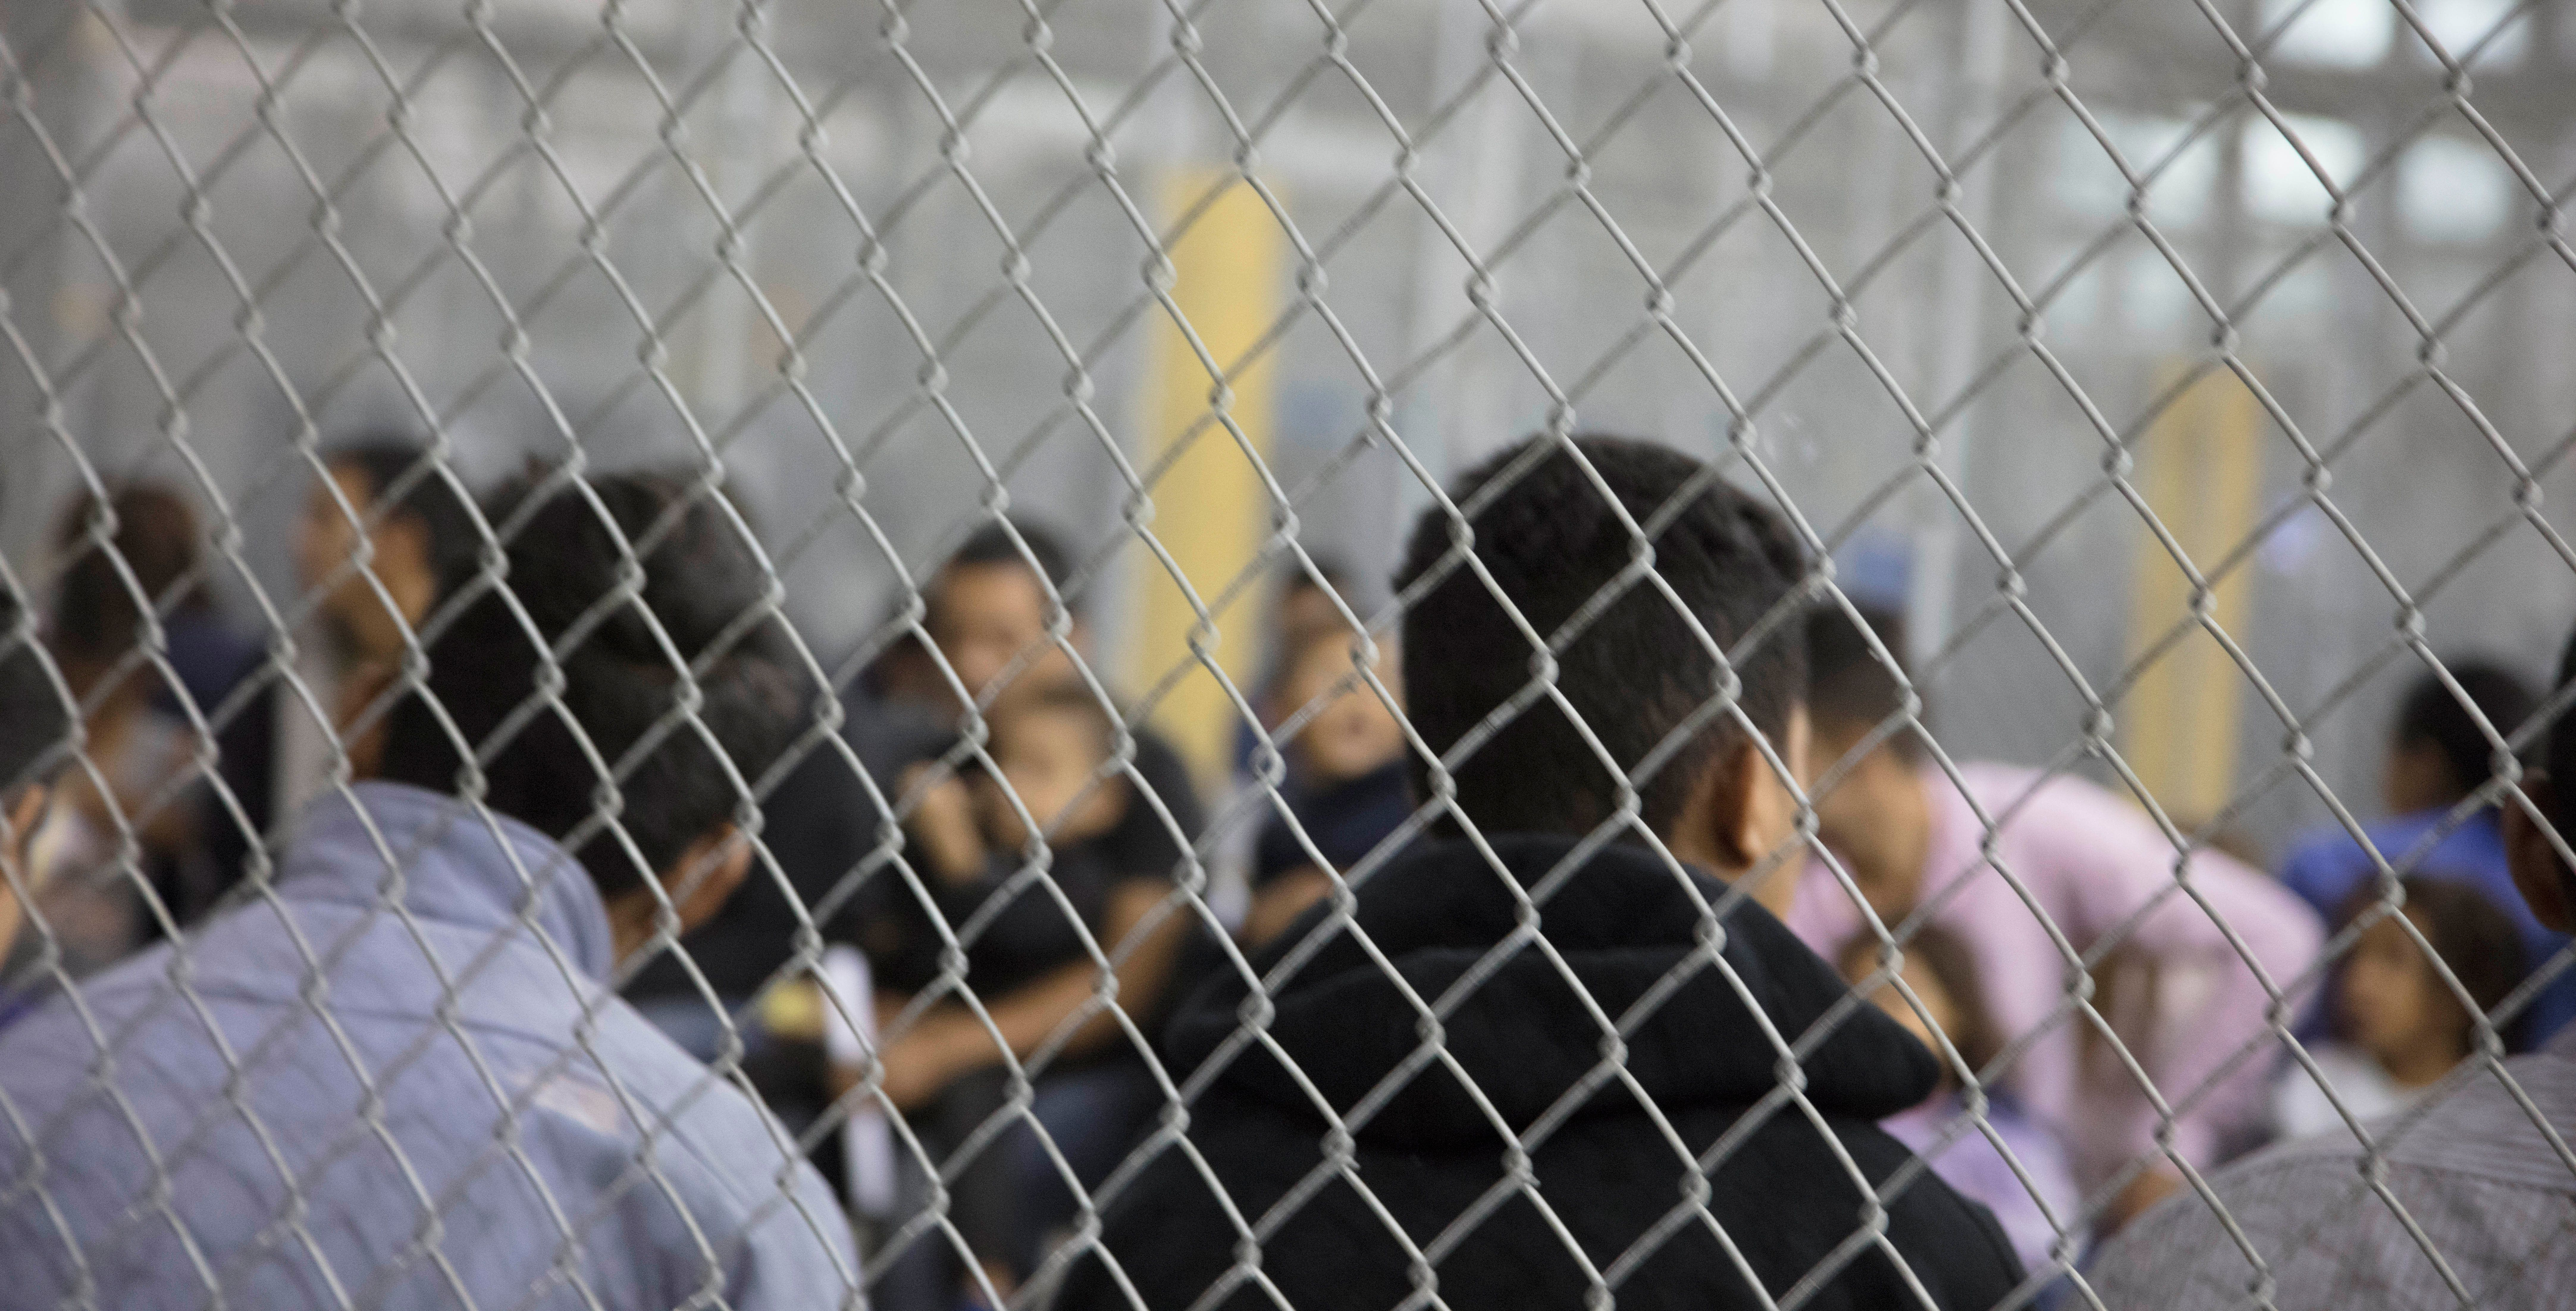 A view of inside U.S. Customs and Border Protection (CBP) detention facility shows detainees inside fenced areas at Rio Grande Valley Centralized Processing Center in Rio Grande City, Texas, U.S., June 17, 2018. Picture taken on June 17, 2018.   Courtesy CBP/Handout via REUTERS   ATTENTION EDITORS - THIS IMAGE HAS BEEN SUPPLIED BY A THIRD PARTY.